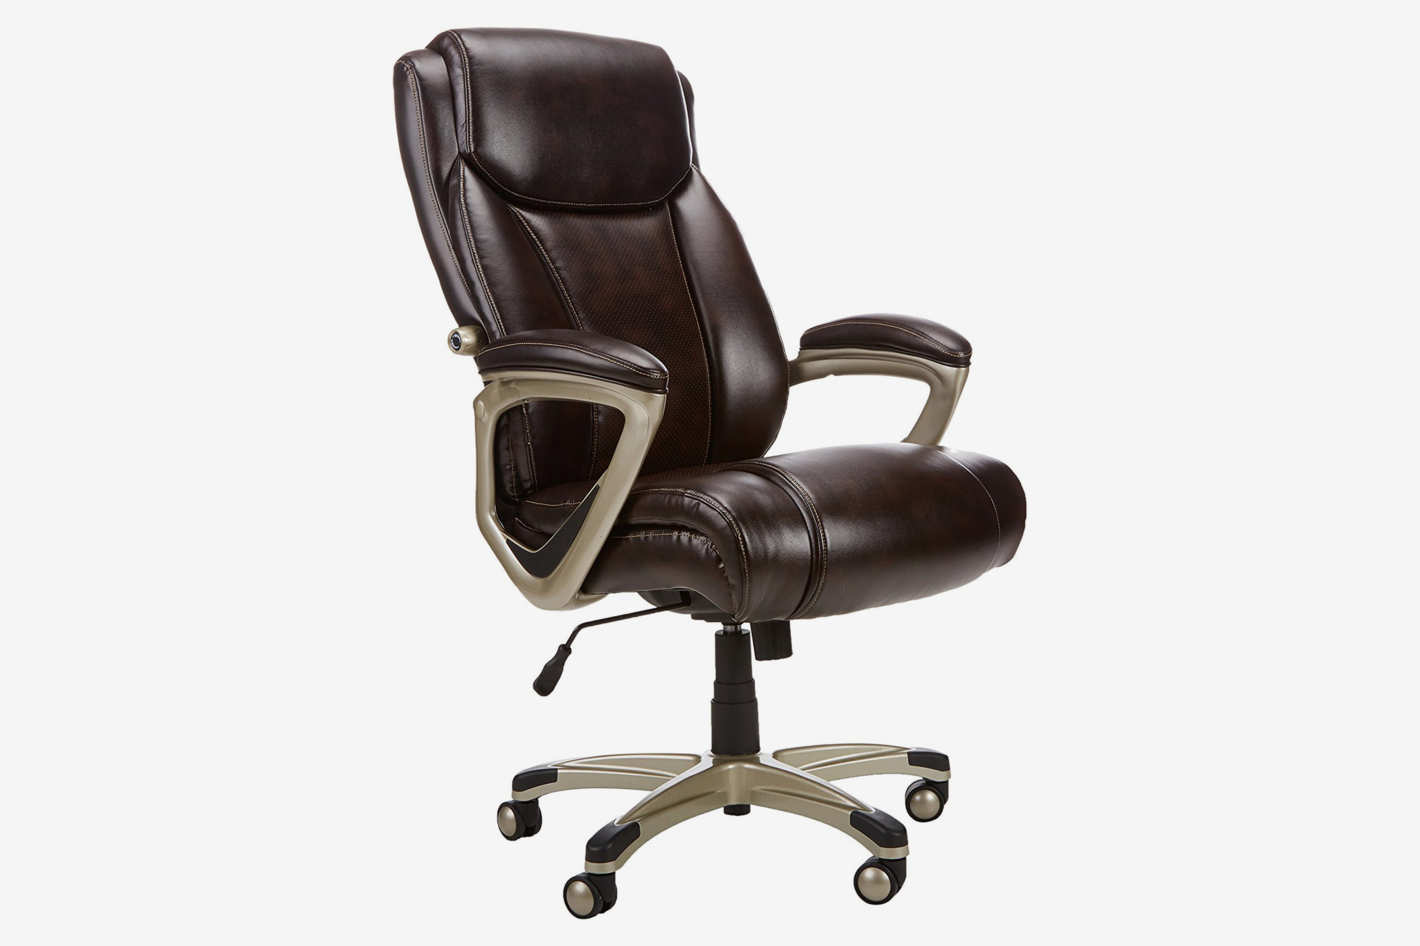 amazonbasics brown office chair for tall people